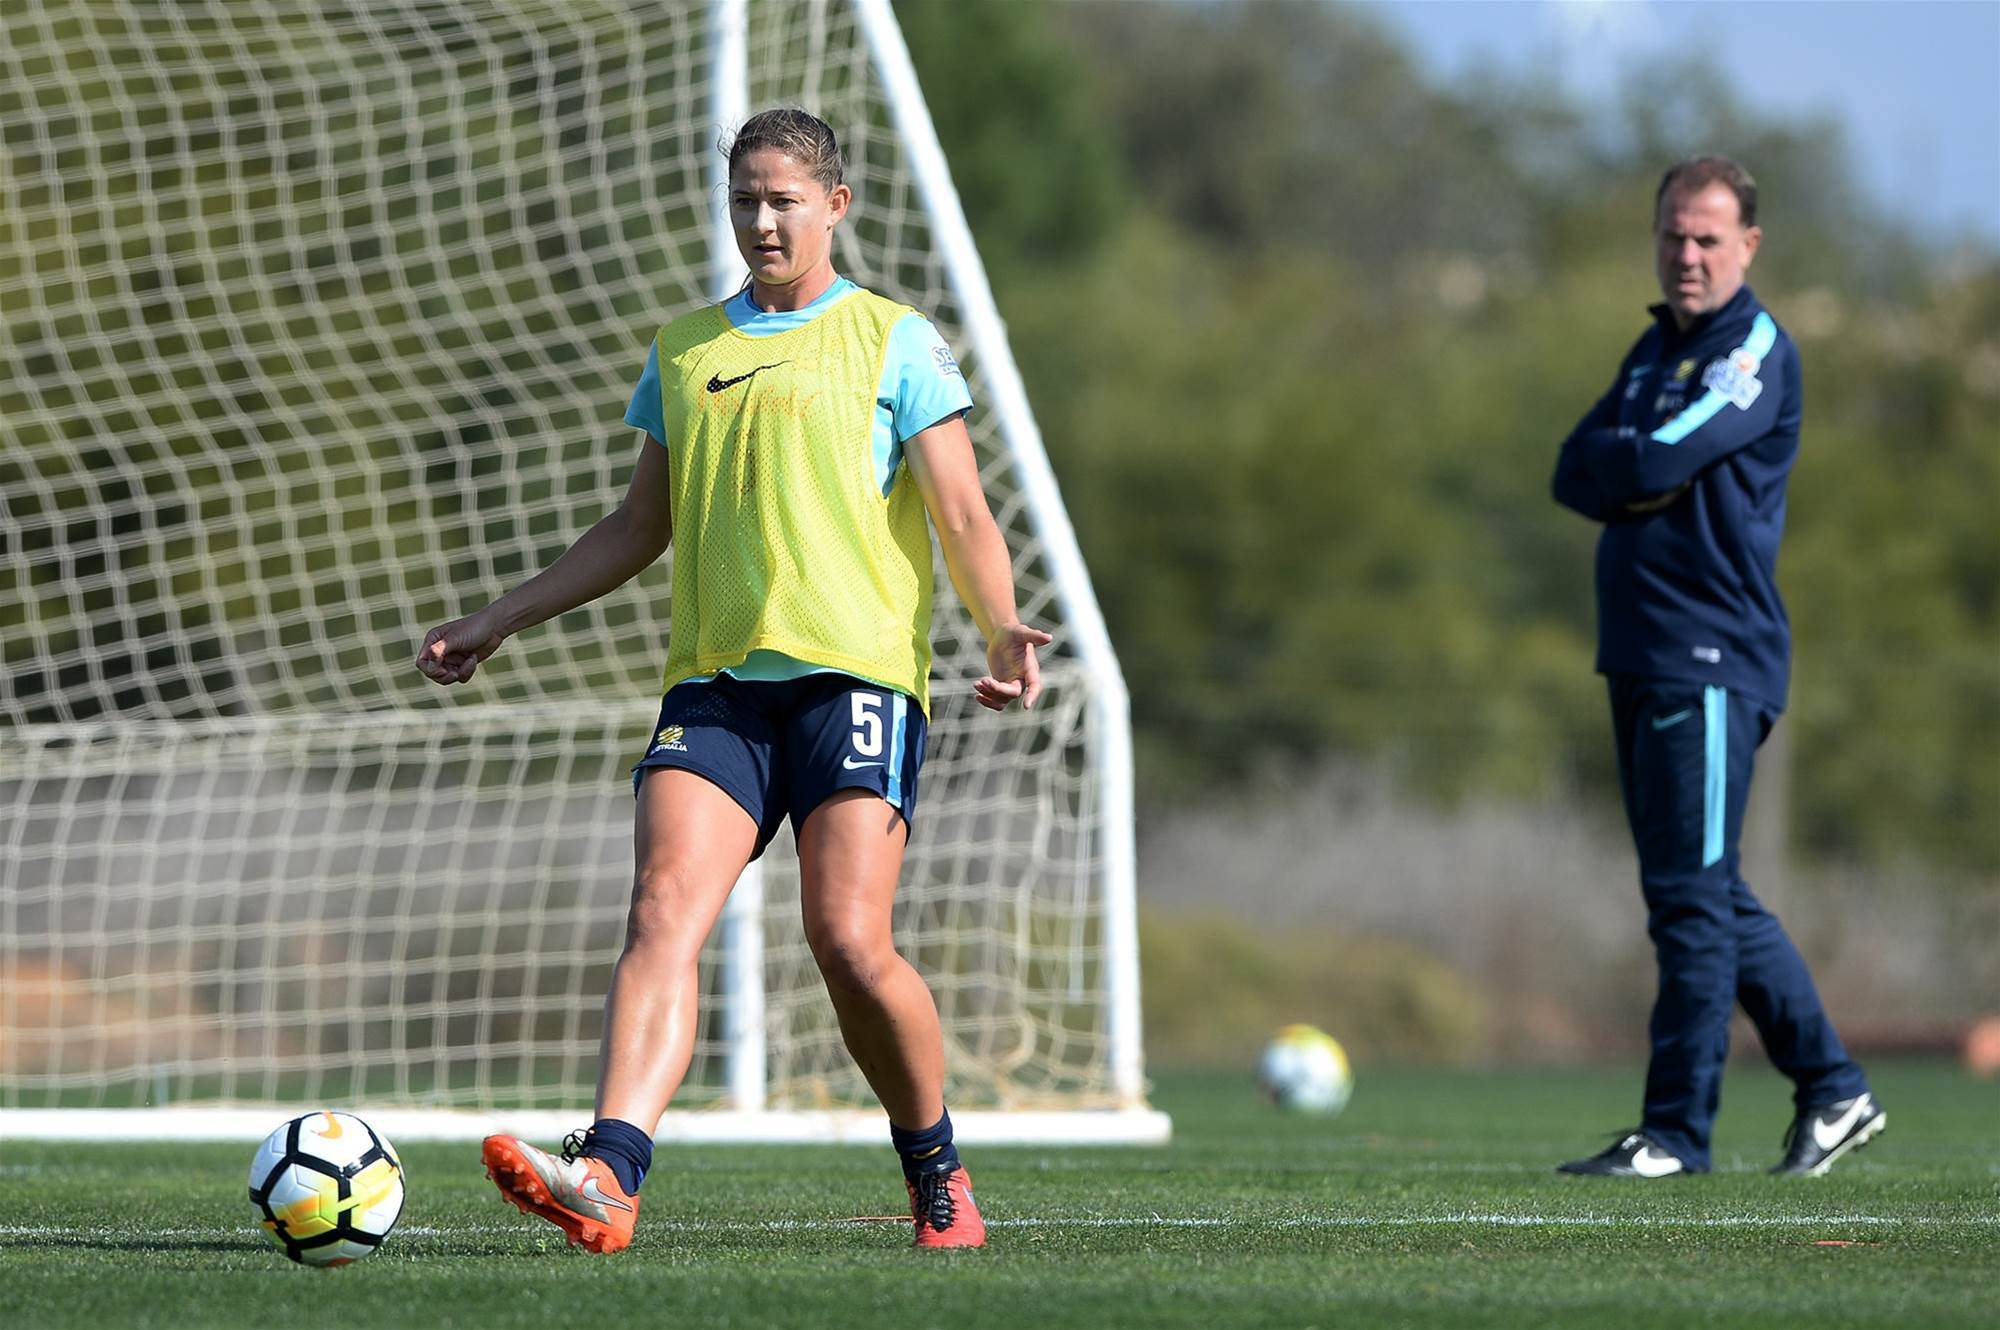 Alleway replaces Catley in squad